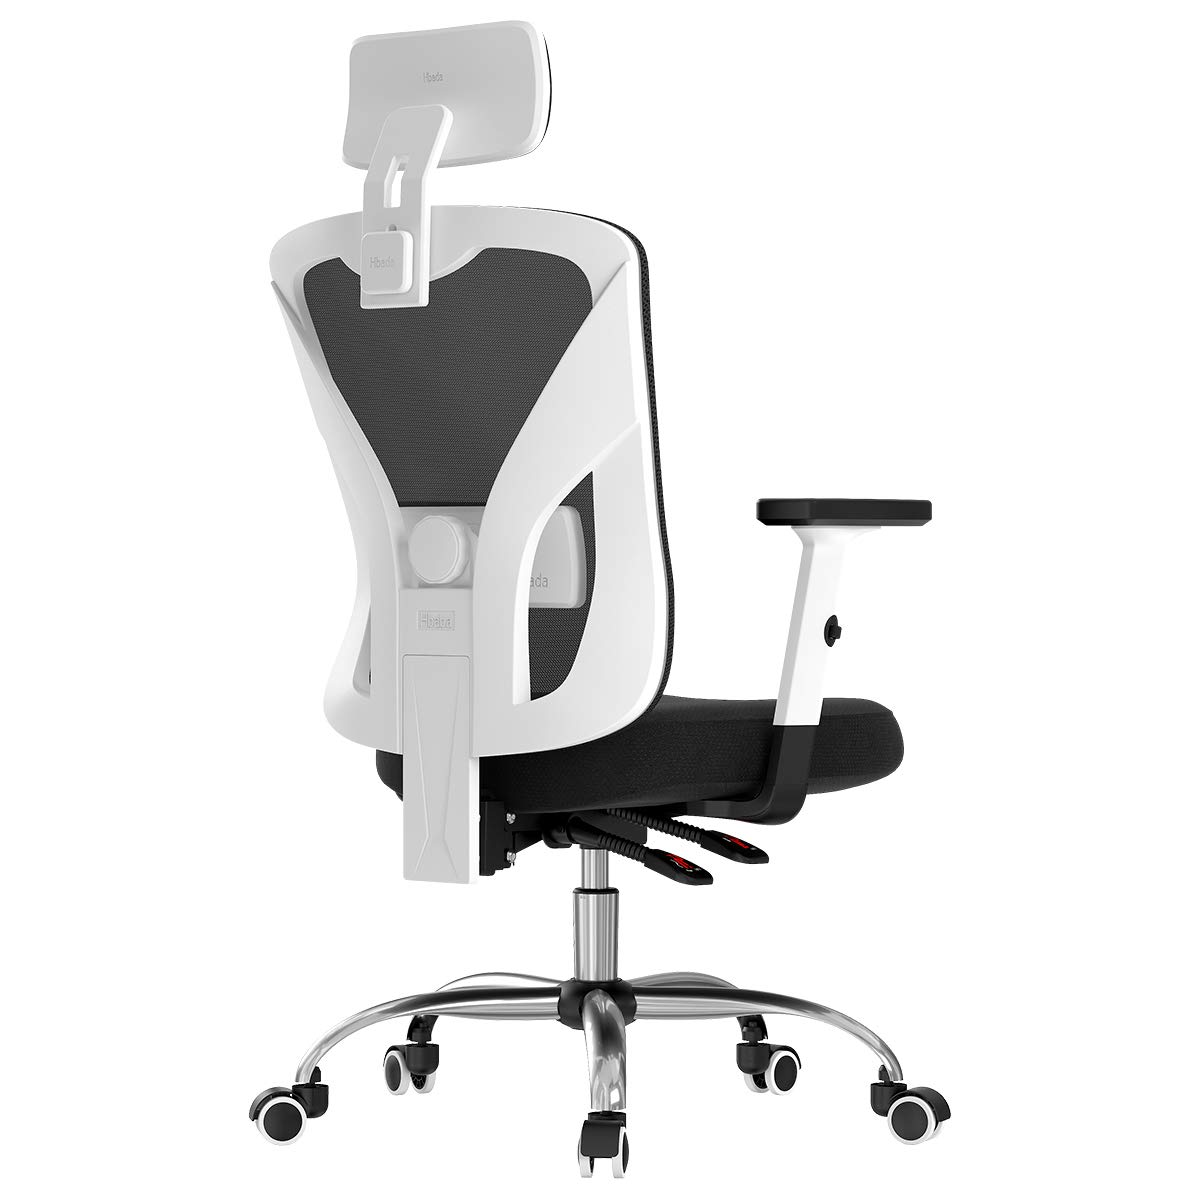 Hbada Ergonomic Office Desk Chair with Adjustable Armrest, Lumbar Support, Headrest and Breathable Skin-Friendly Mesh, White by Hbada